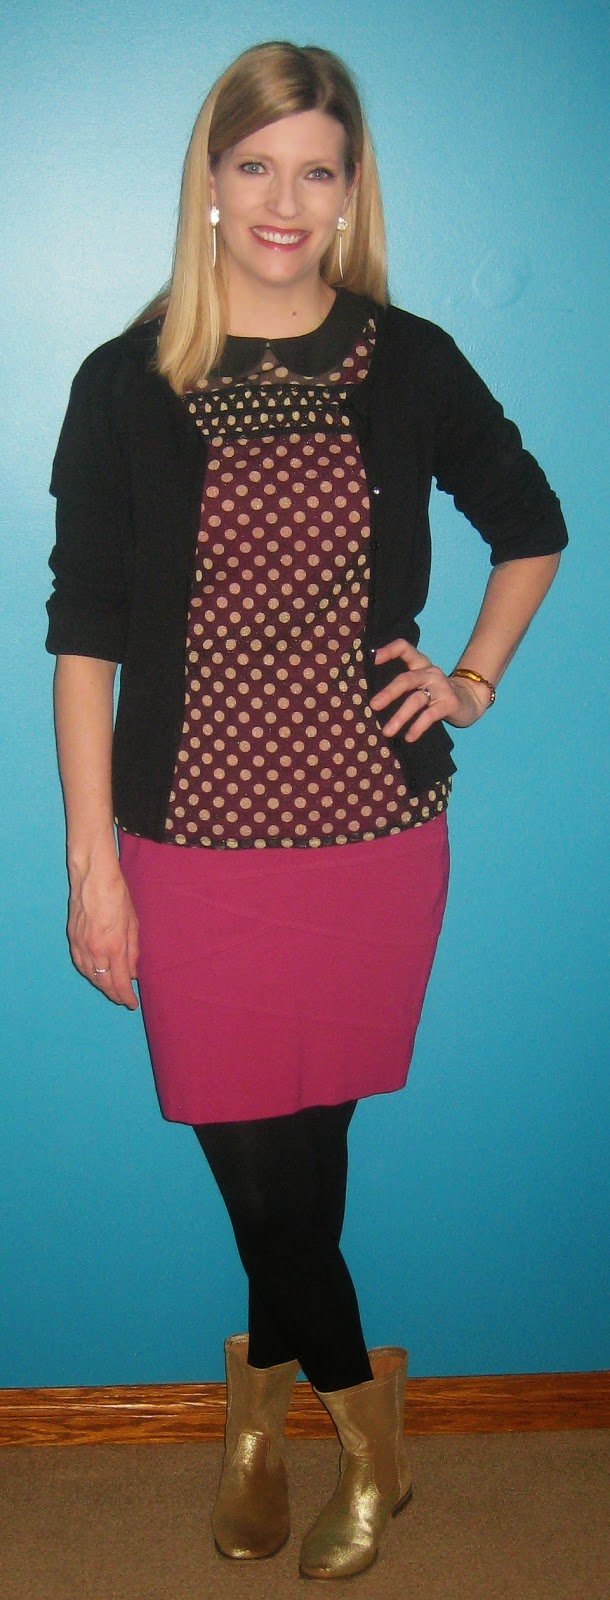 VV Boutique Style: What I Wore Wednesday